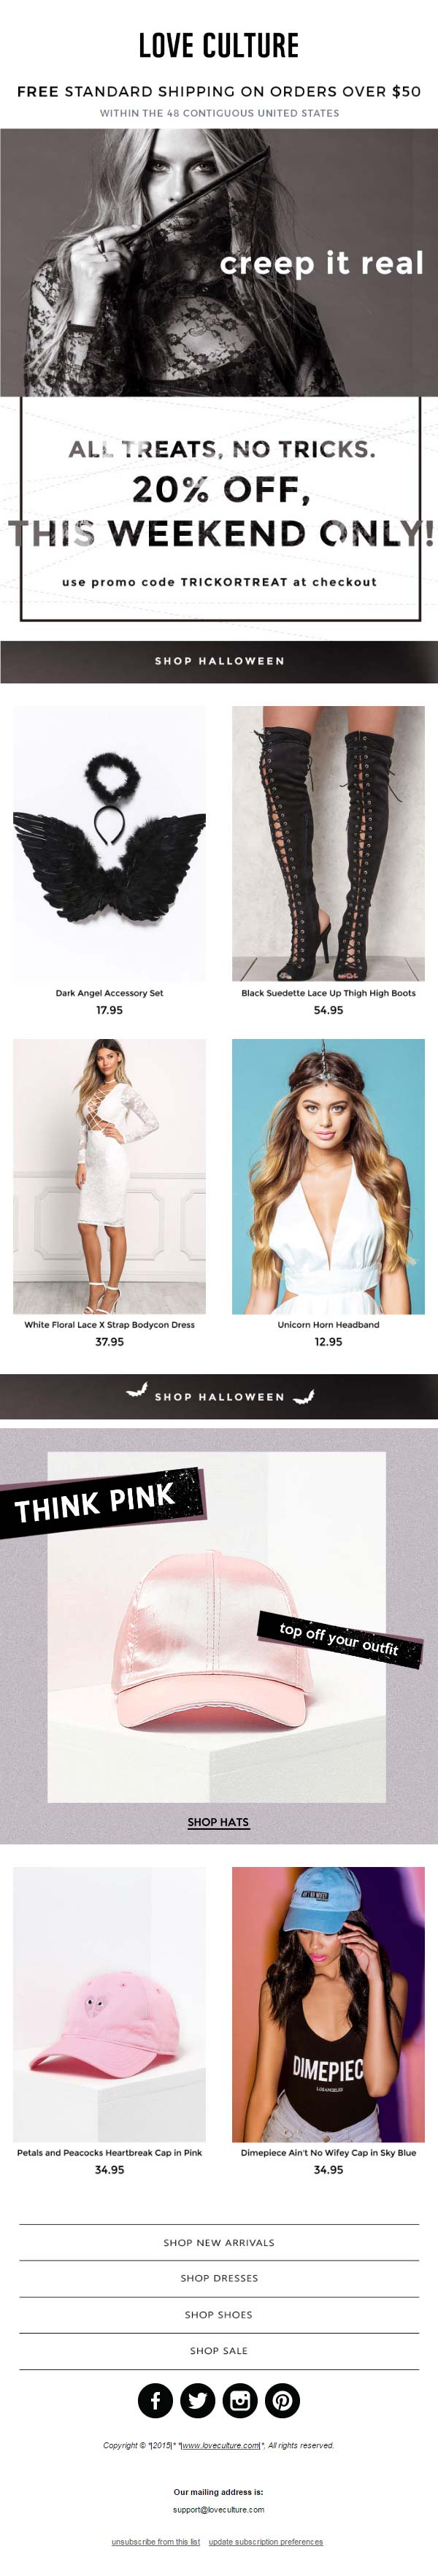 Halloween-Email-Templates_Love-Culture